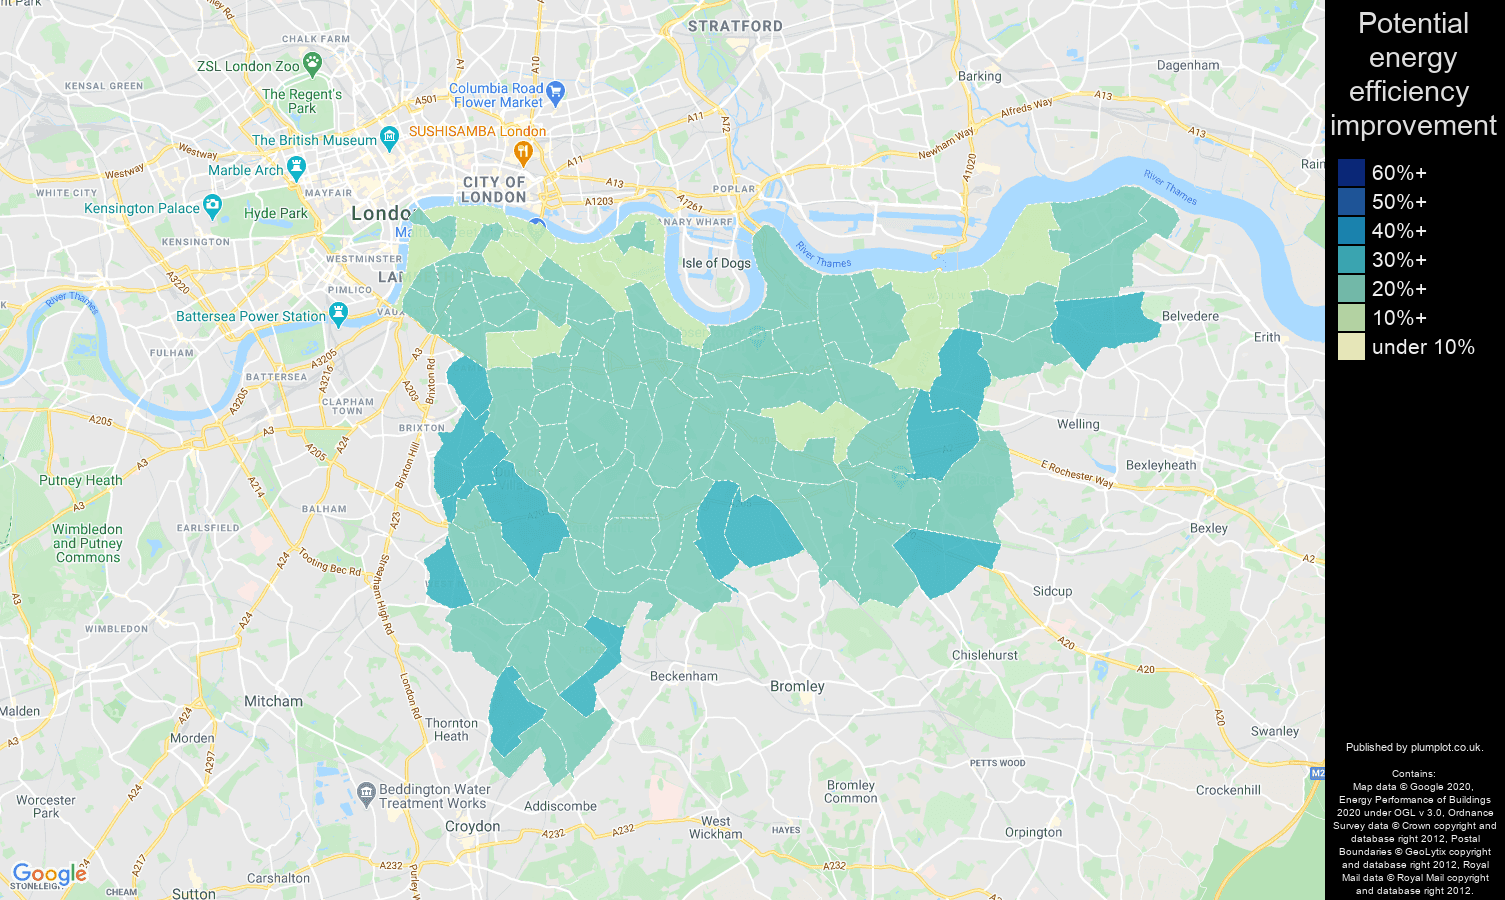 South East London map of potential energy efficiency improvement of houses